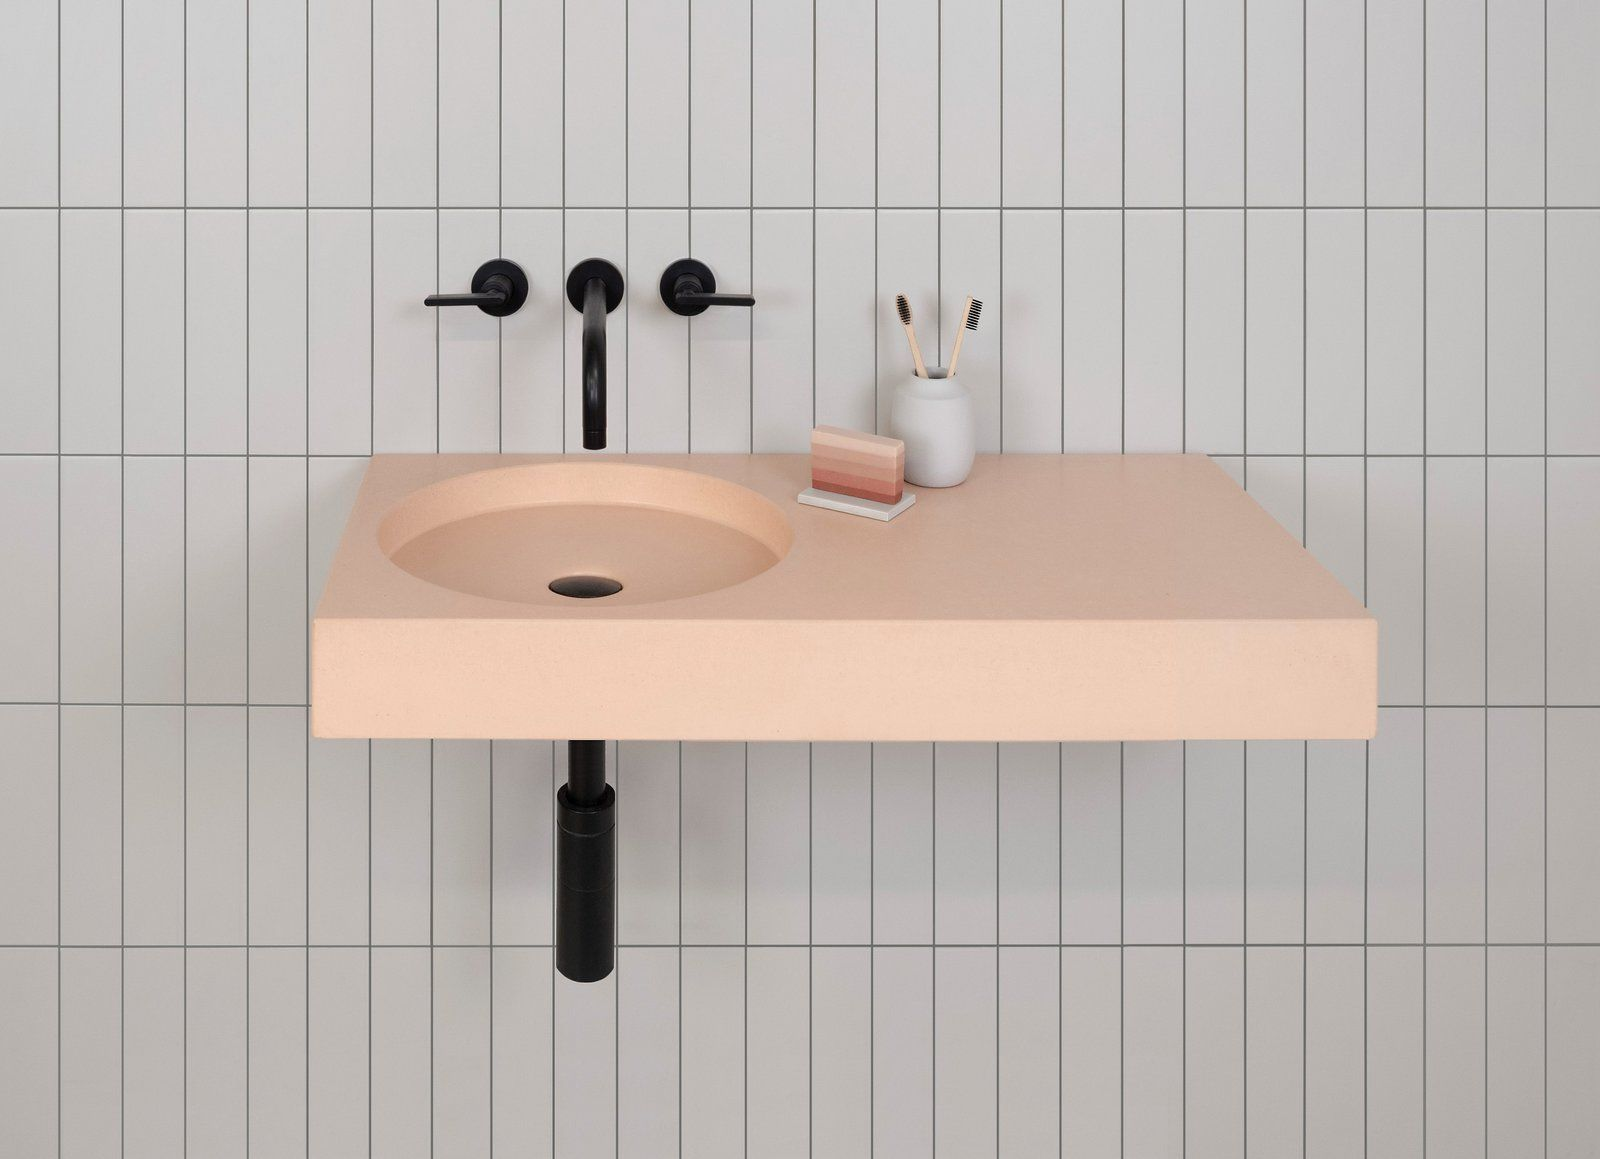 2019 Modern Bathroom Fixture Trend: Bold, Retro Colors